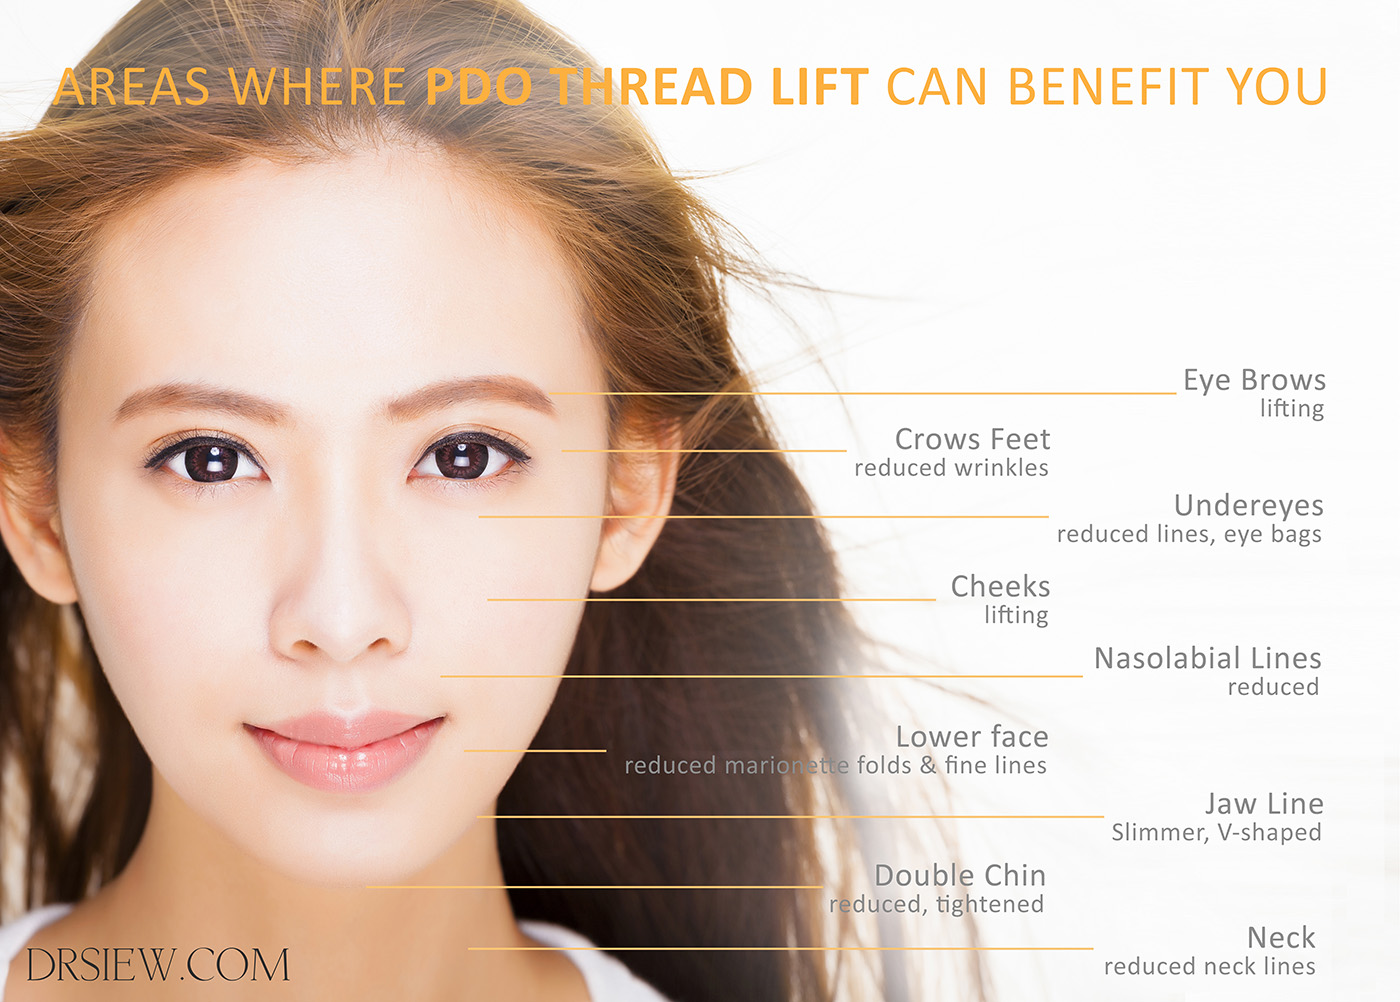 What You Need to Know About PDO Thread Lift | Non-Surgical Skin Lifting